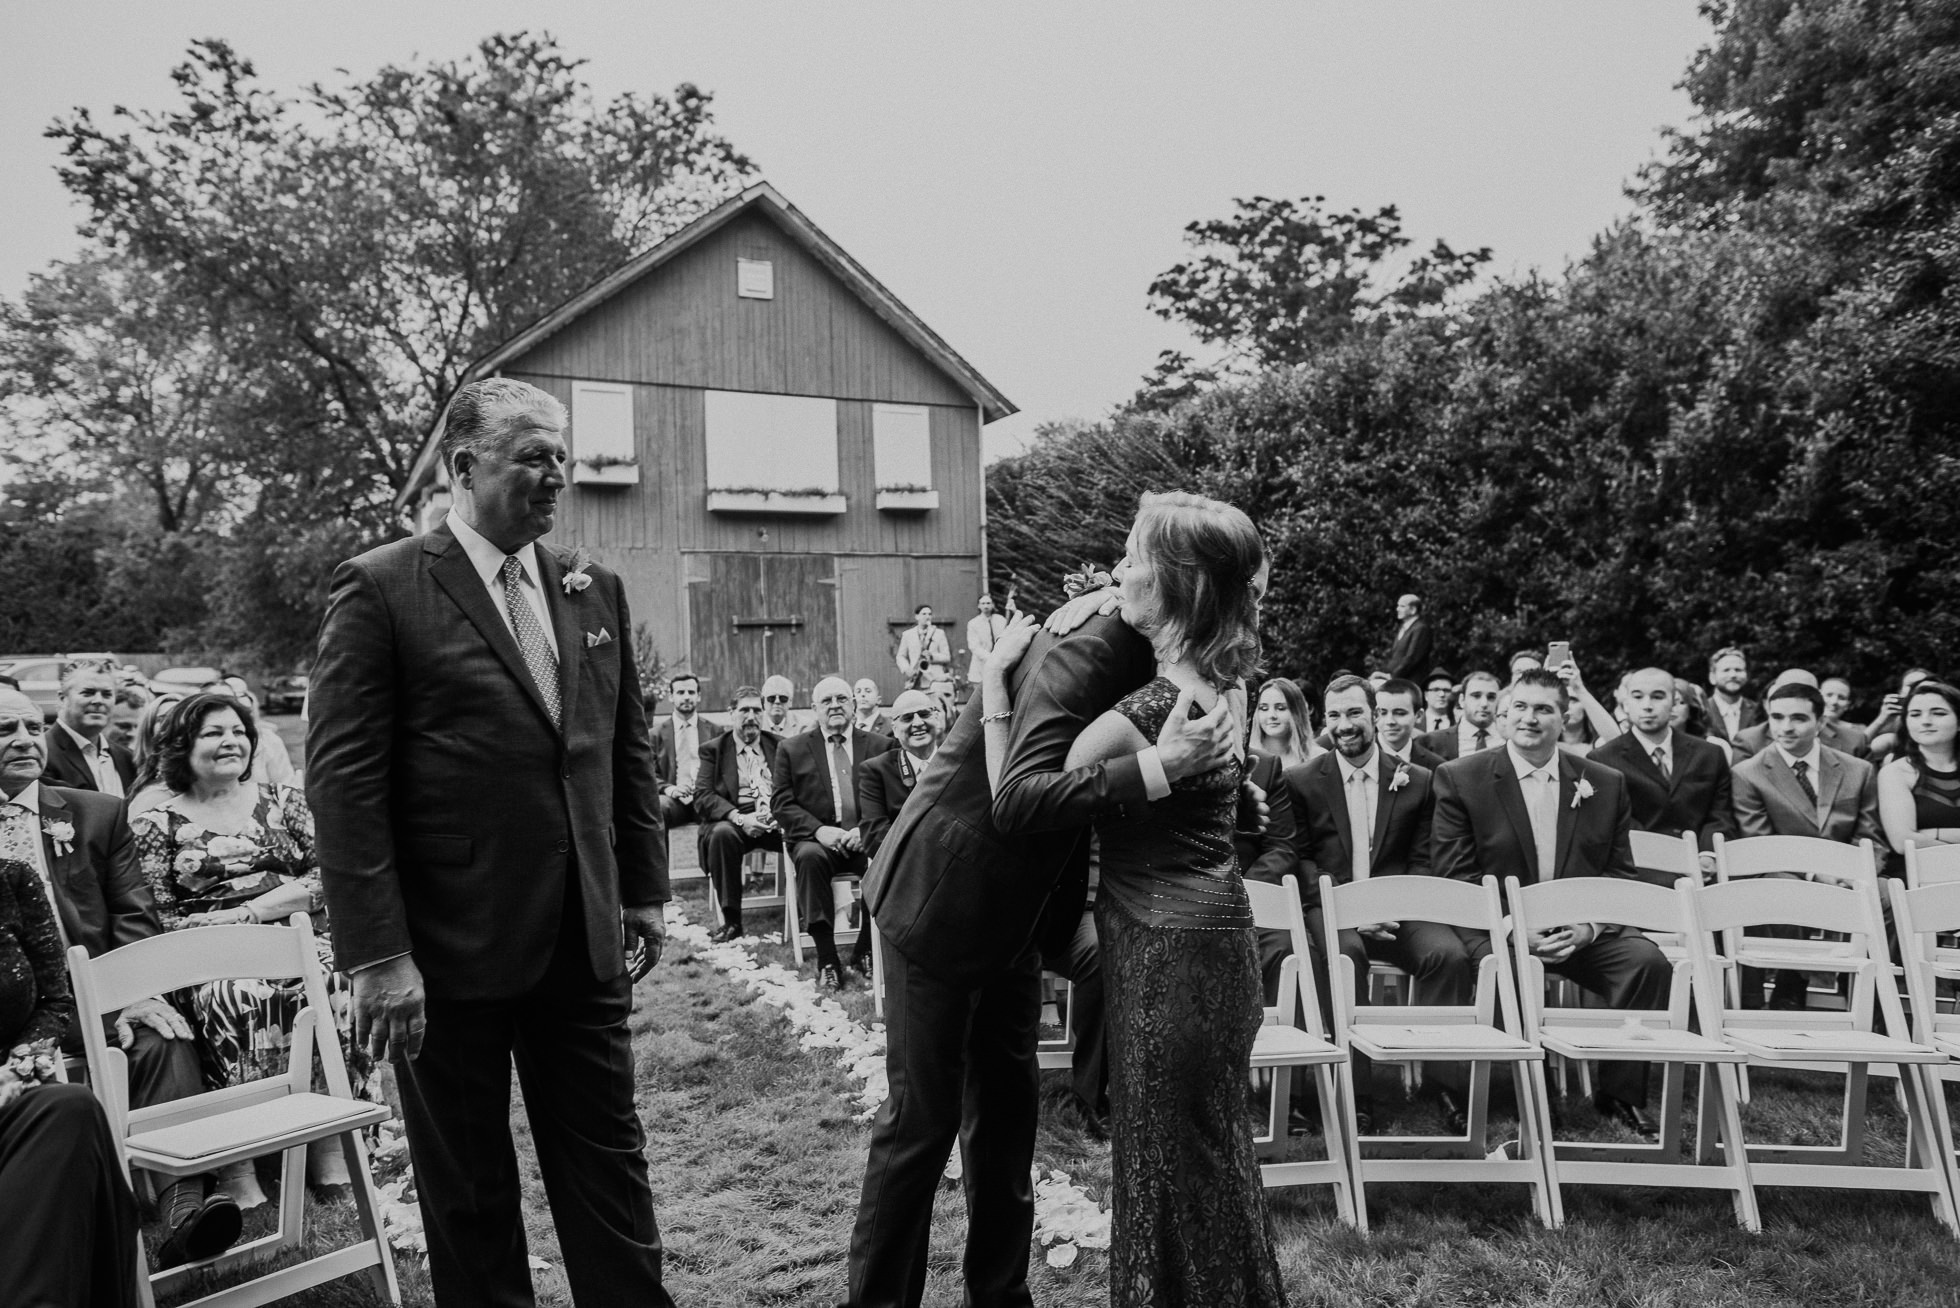 the Hedges Inn rustic wedding ceremony